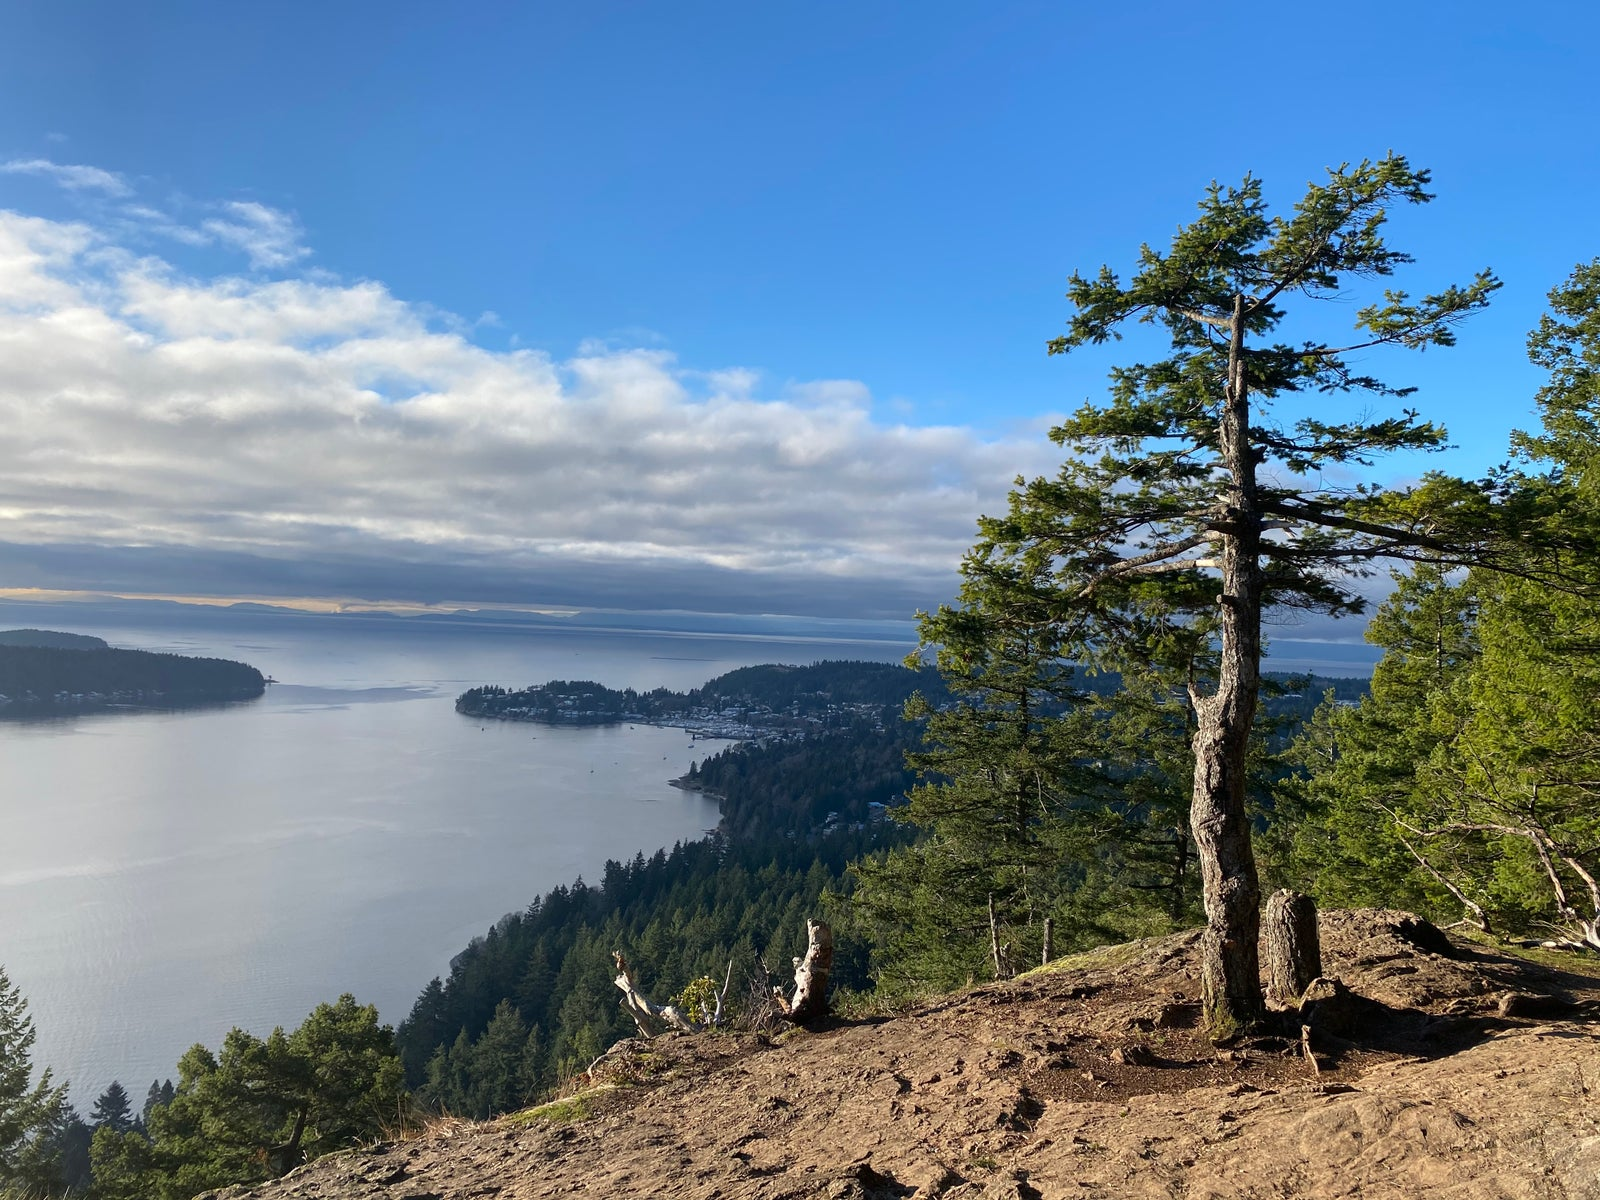 Gibsons from Soames Peak